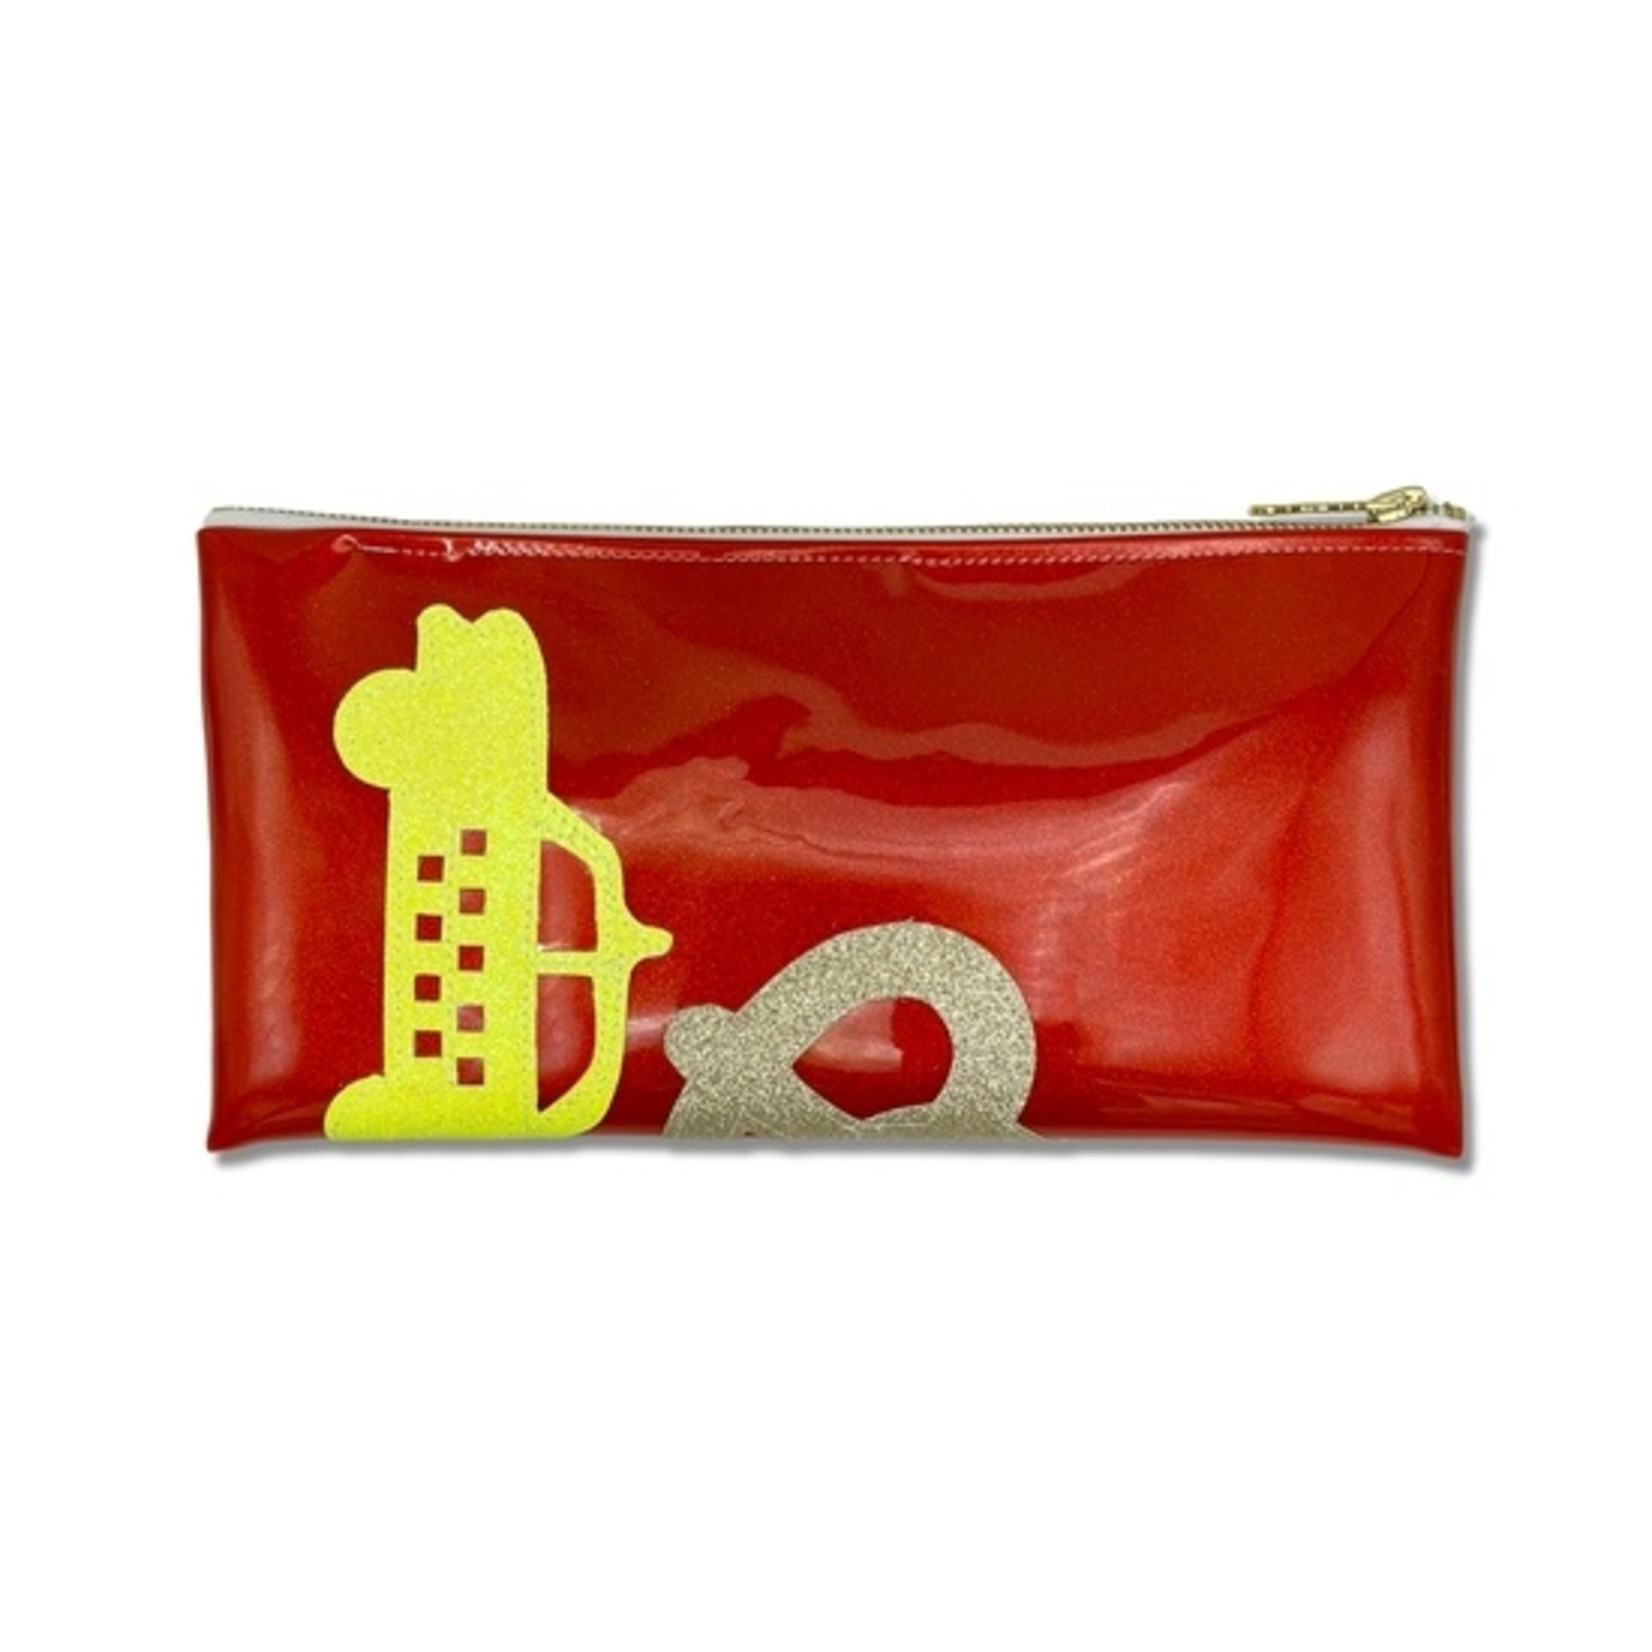 Julie Mollo NYC Collage Clutch!